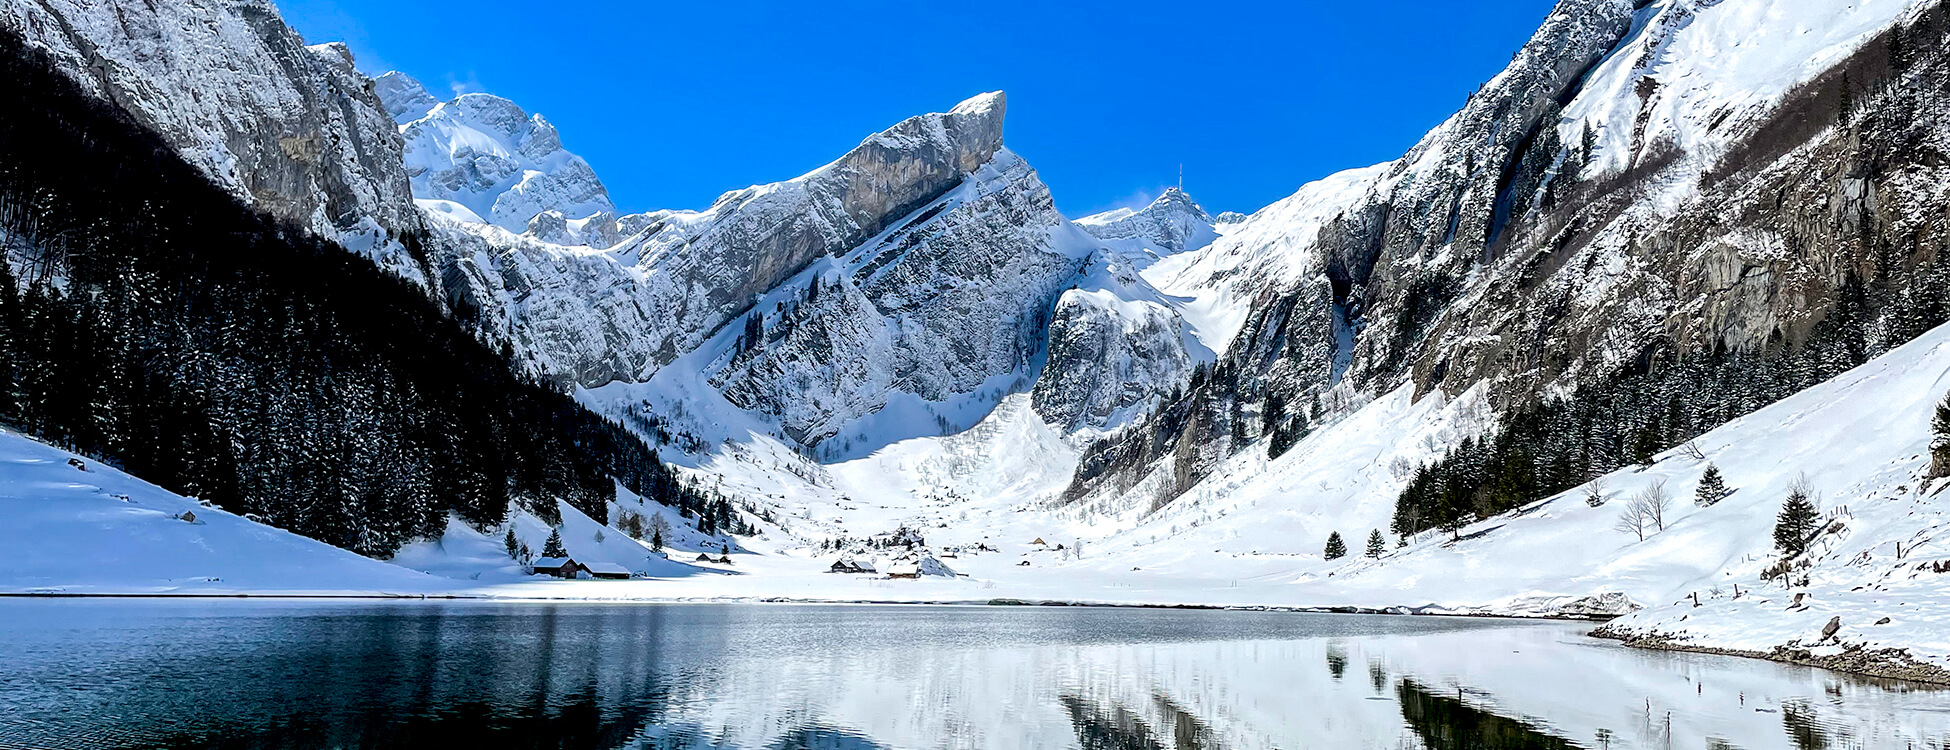 mountain lake with snow on the tips